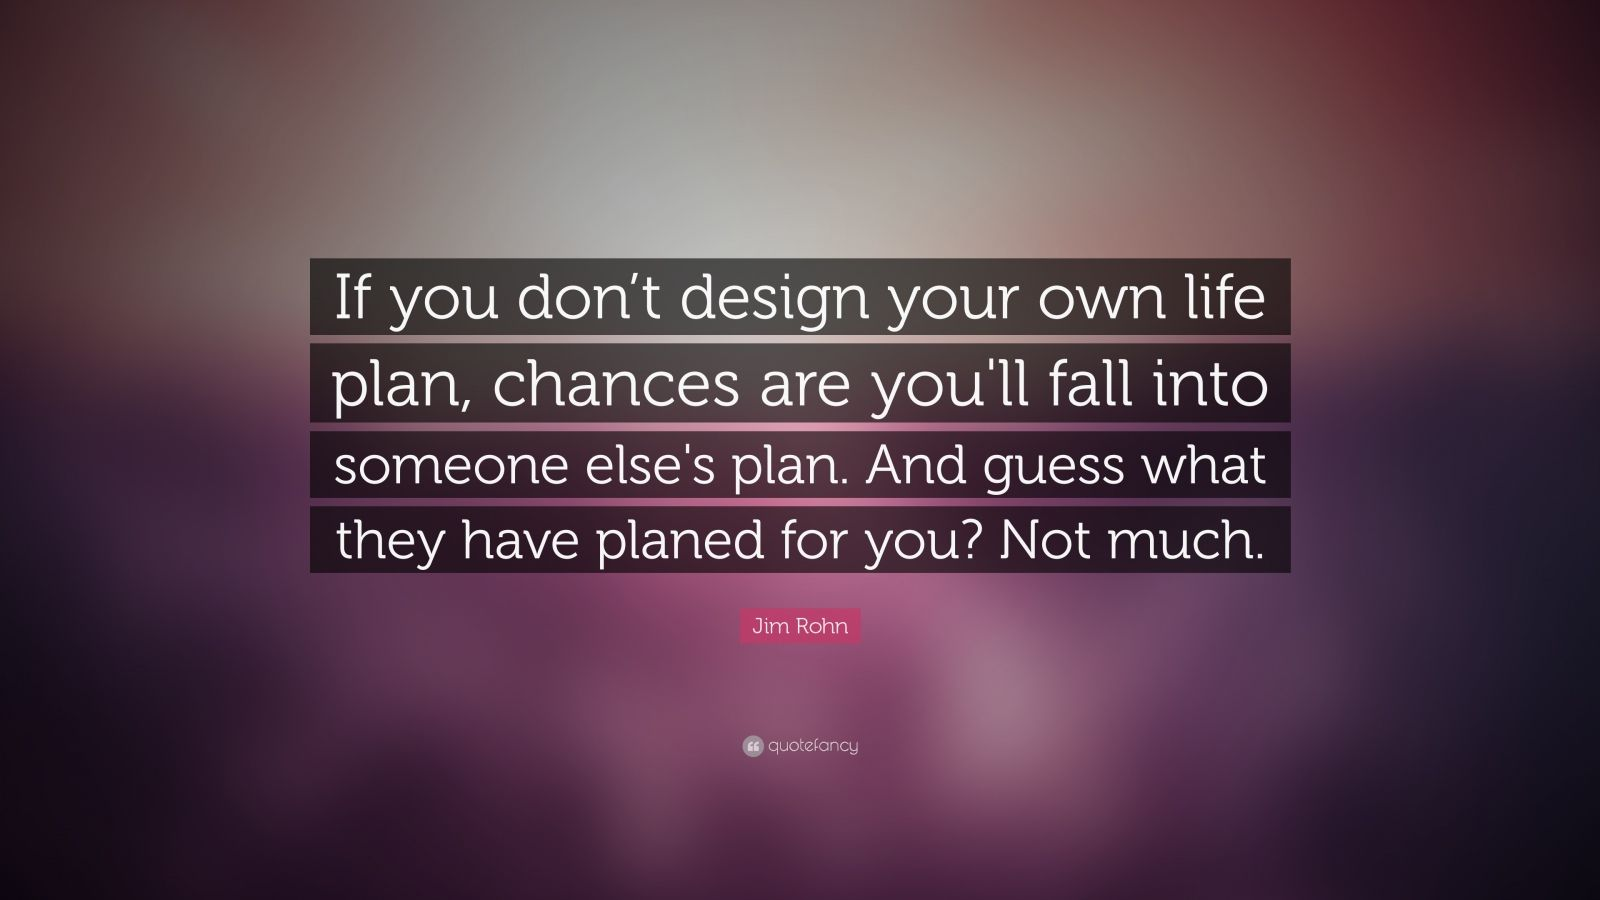 Chances Quotes Wallpaper Jim Rohn Quote If You Don T Design Your Own Life Plan